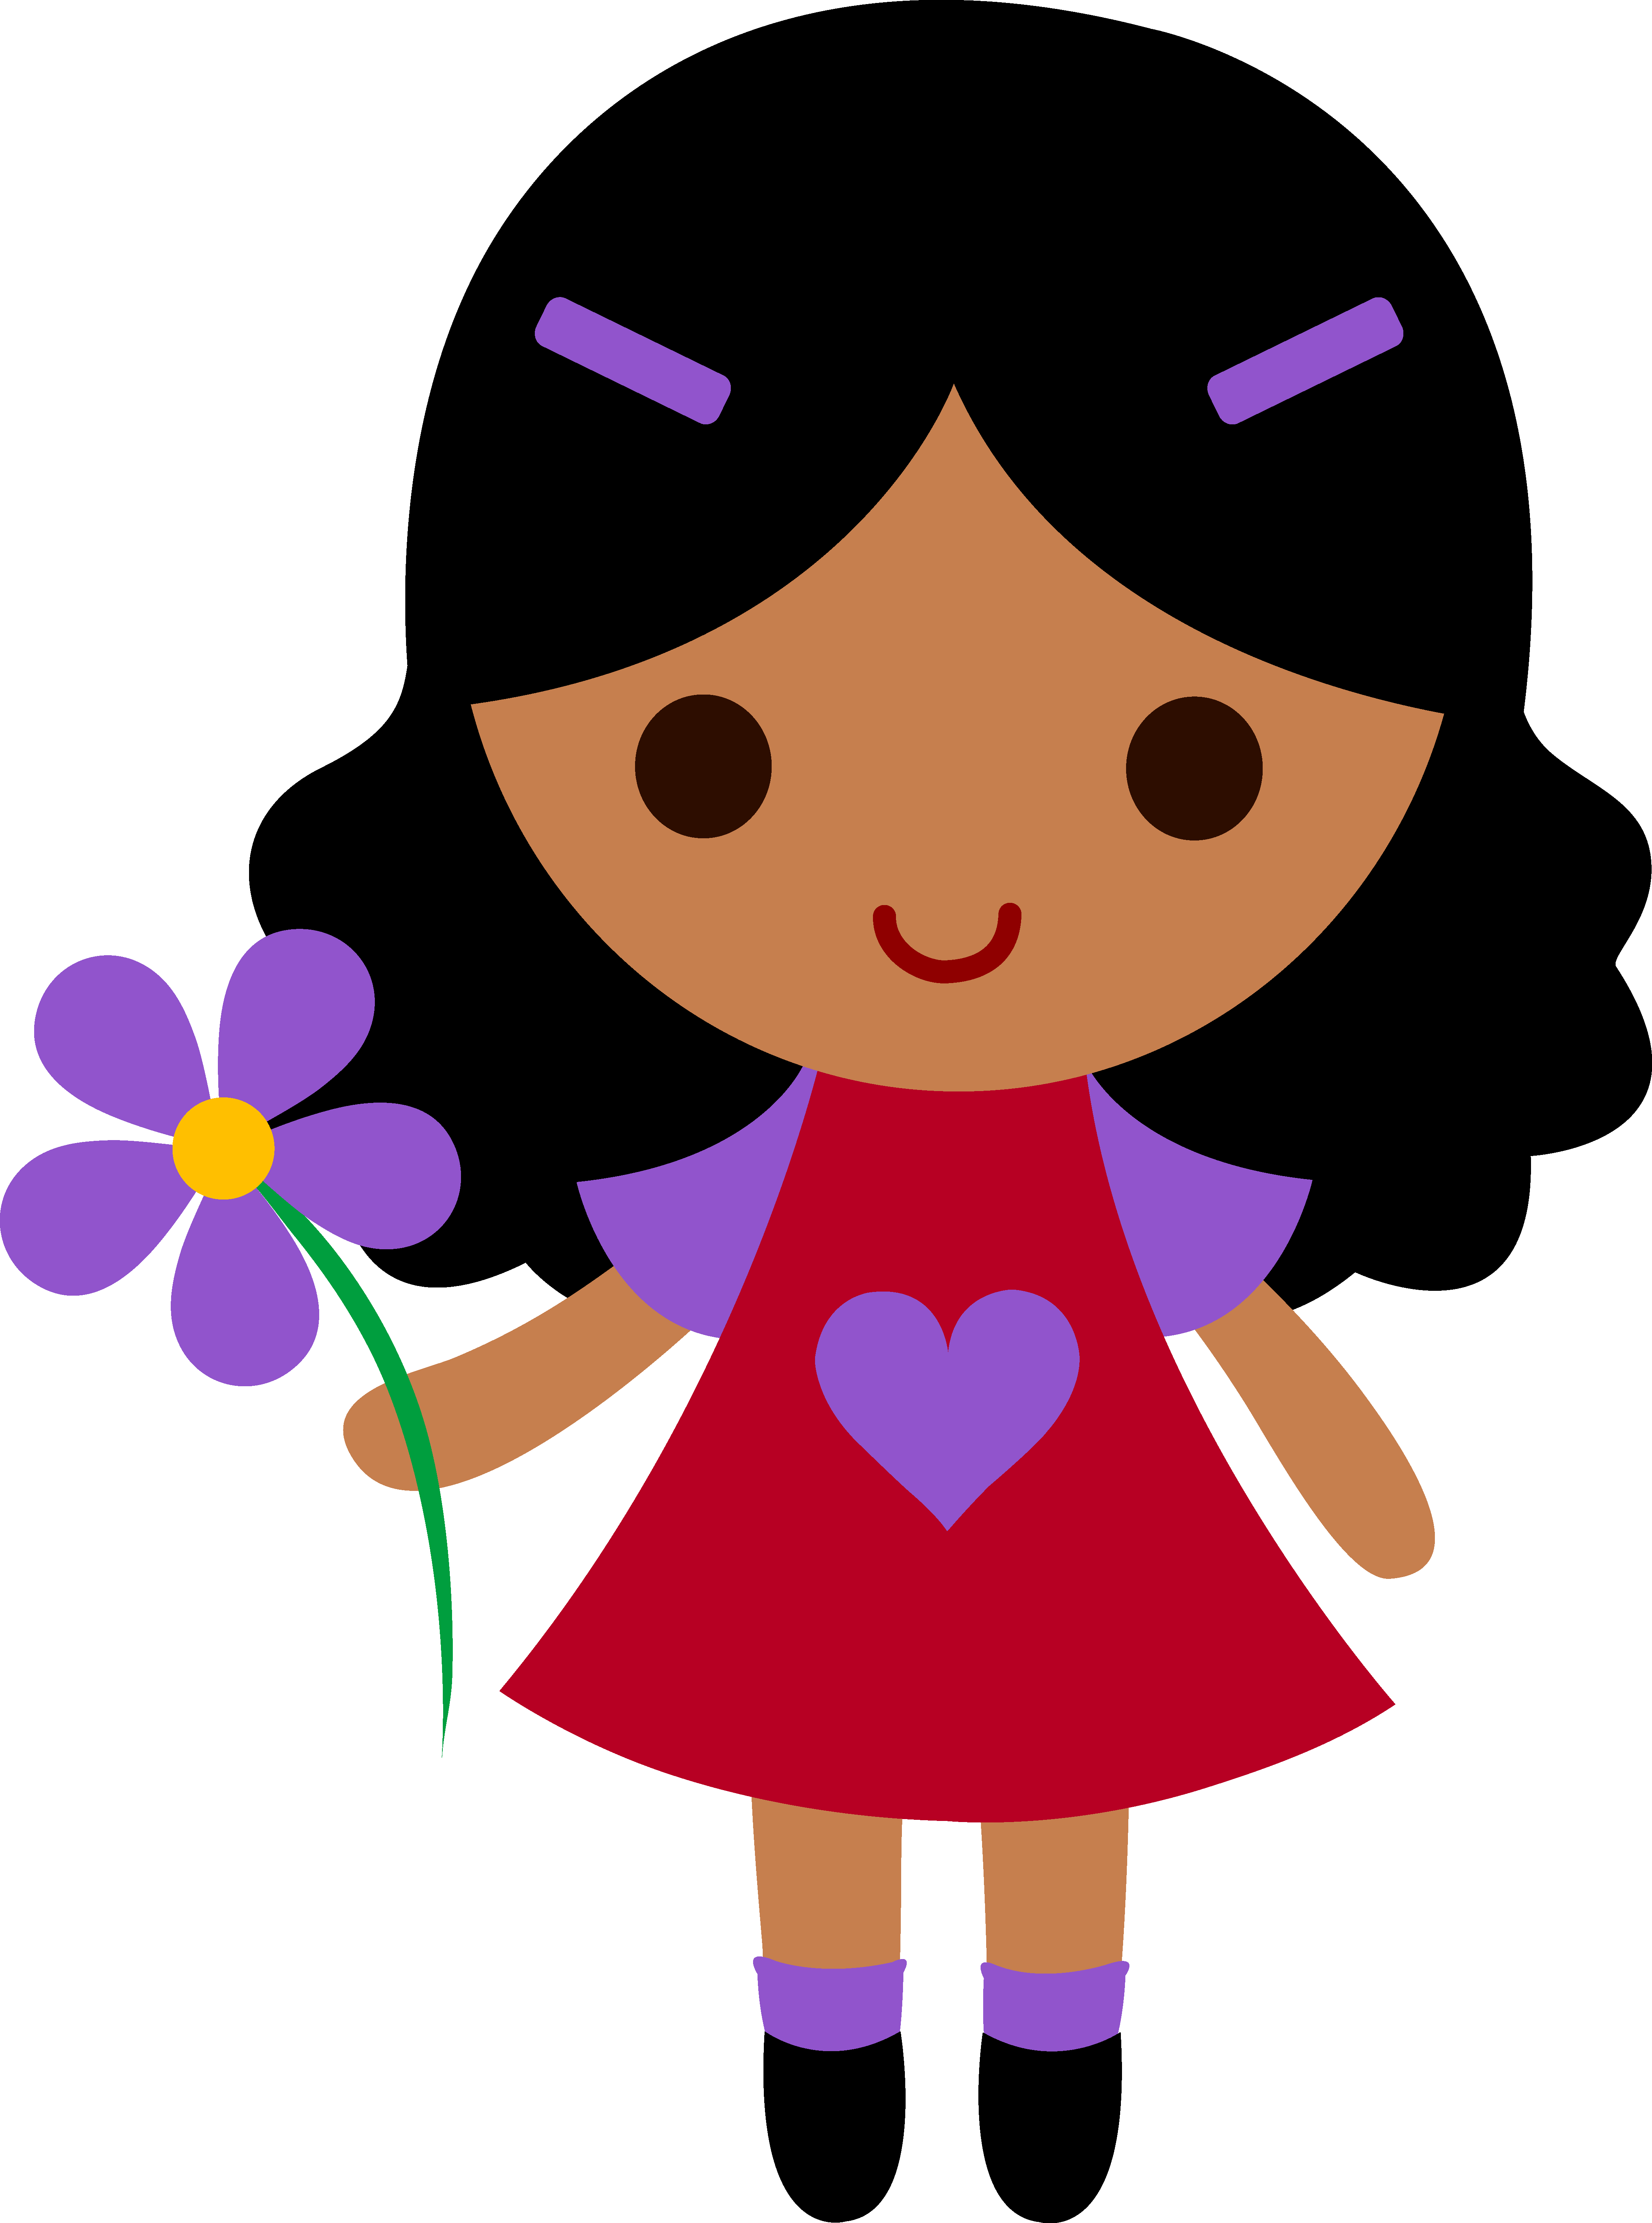 Download Cute Cartoon Girl Transparent Picture Hq Png Image Freepngimg